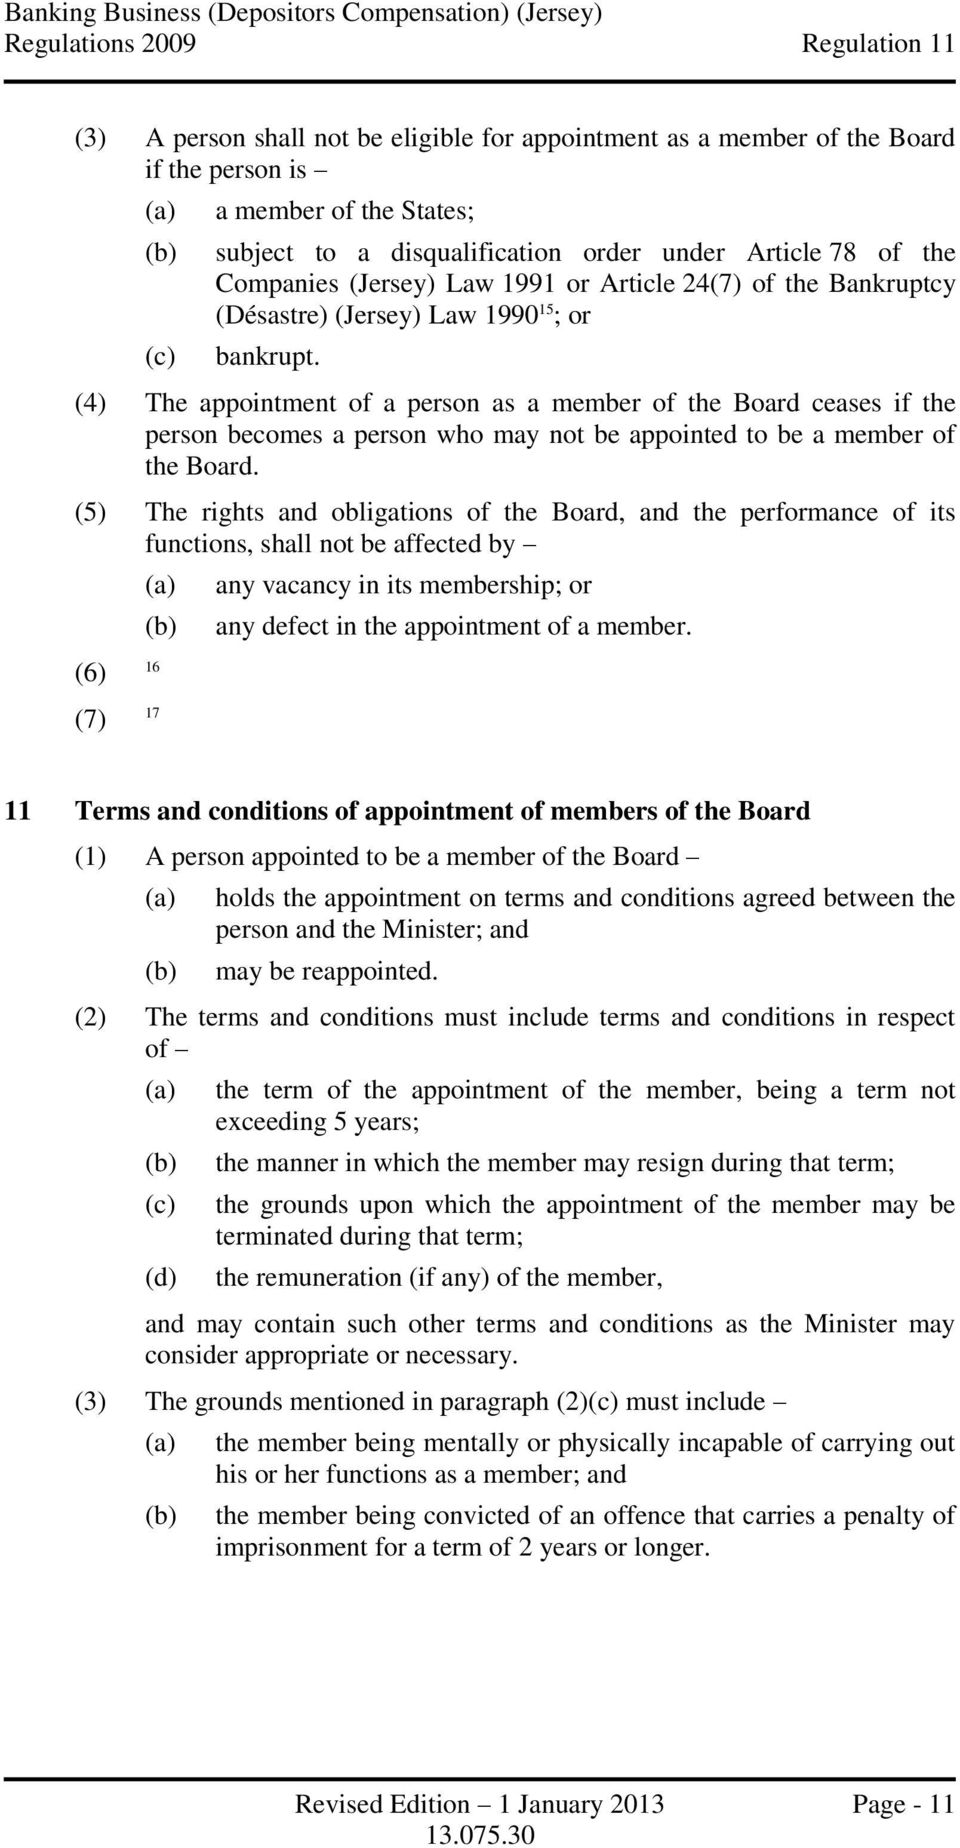 (4) The appointment of a person as a member of the Board ceases if the person becomes a person who may not be appointed to be a member of the Board.